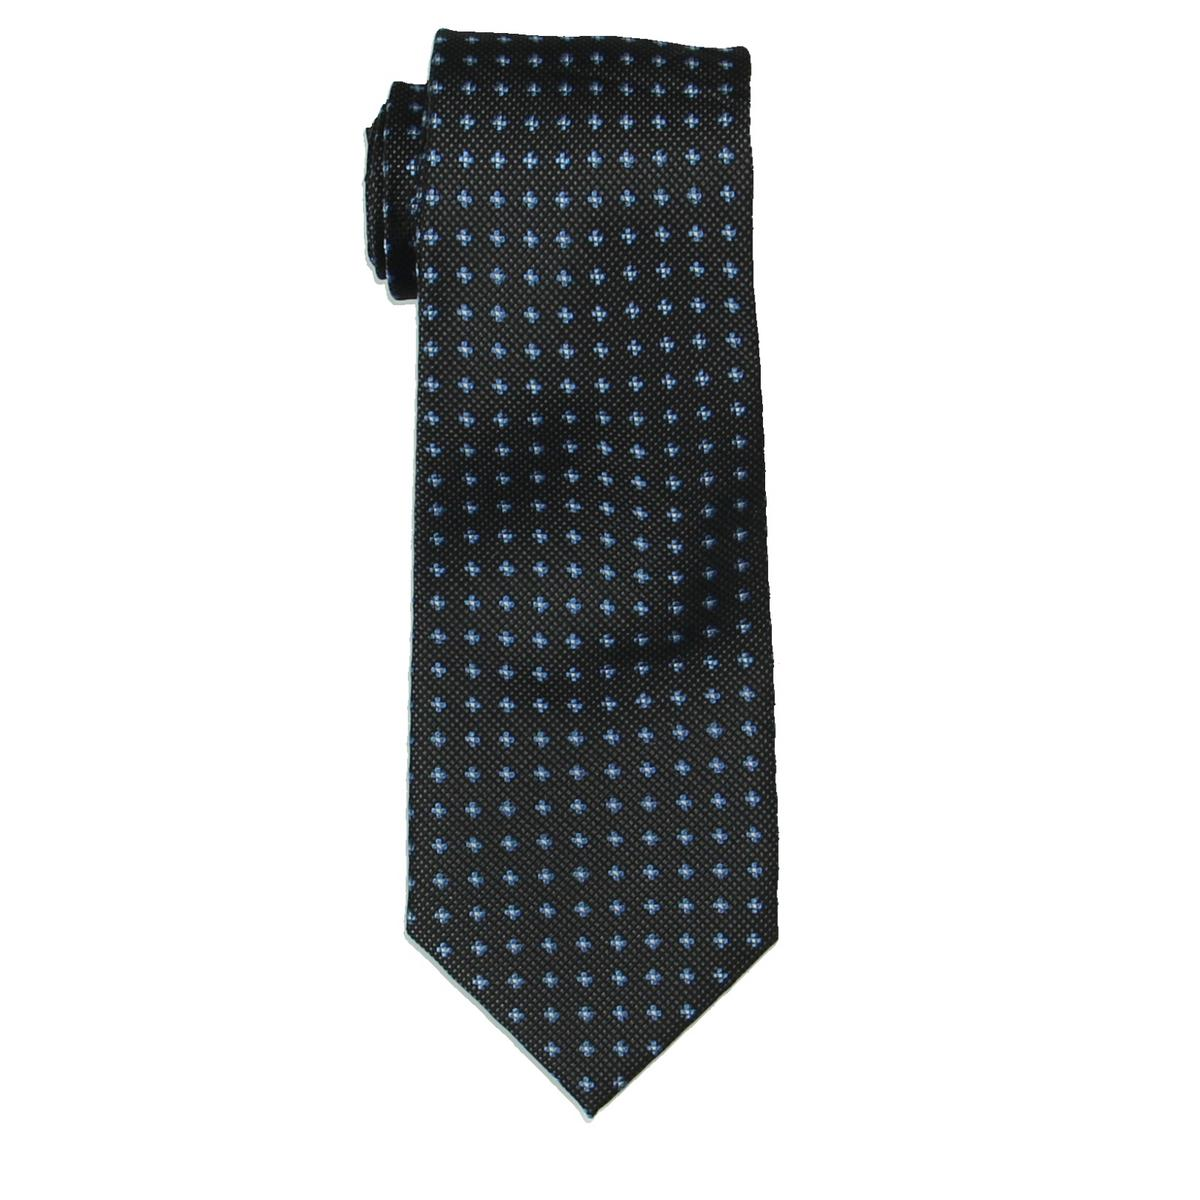 c861f89784 Details about Club Room Mens Sam Black Silk Floral Print Business Neck Tie  O S BHFO 6205